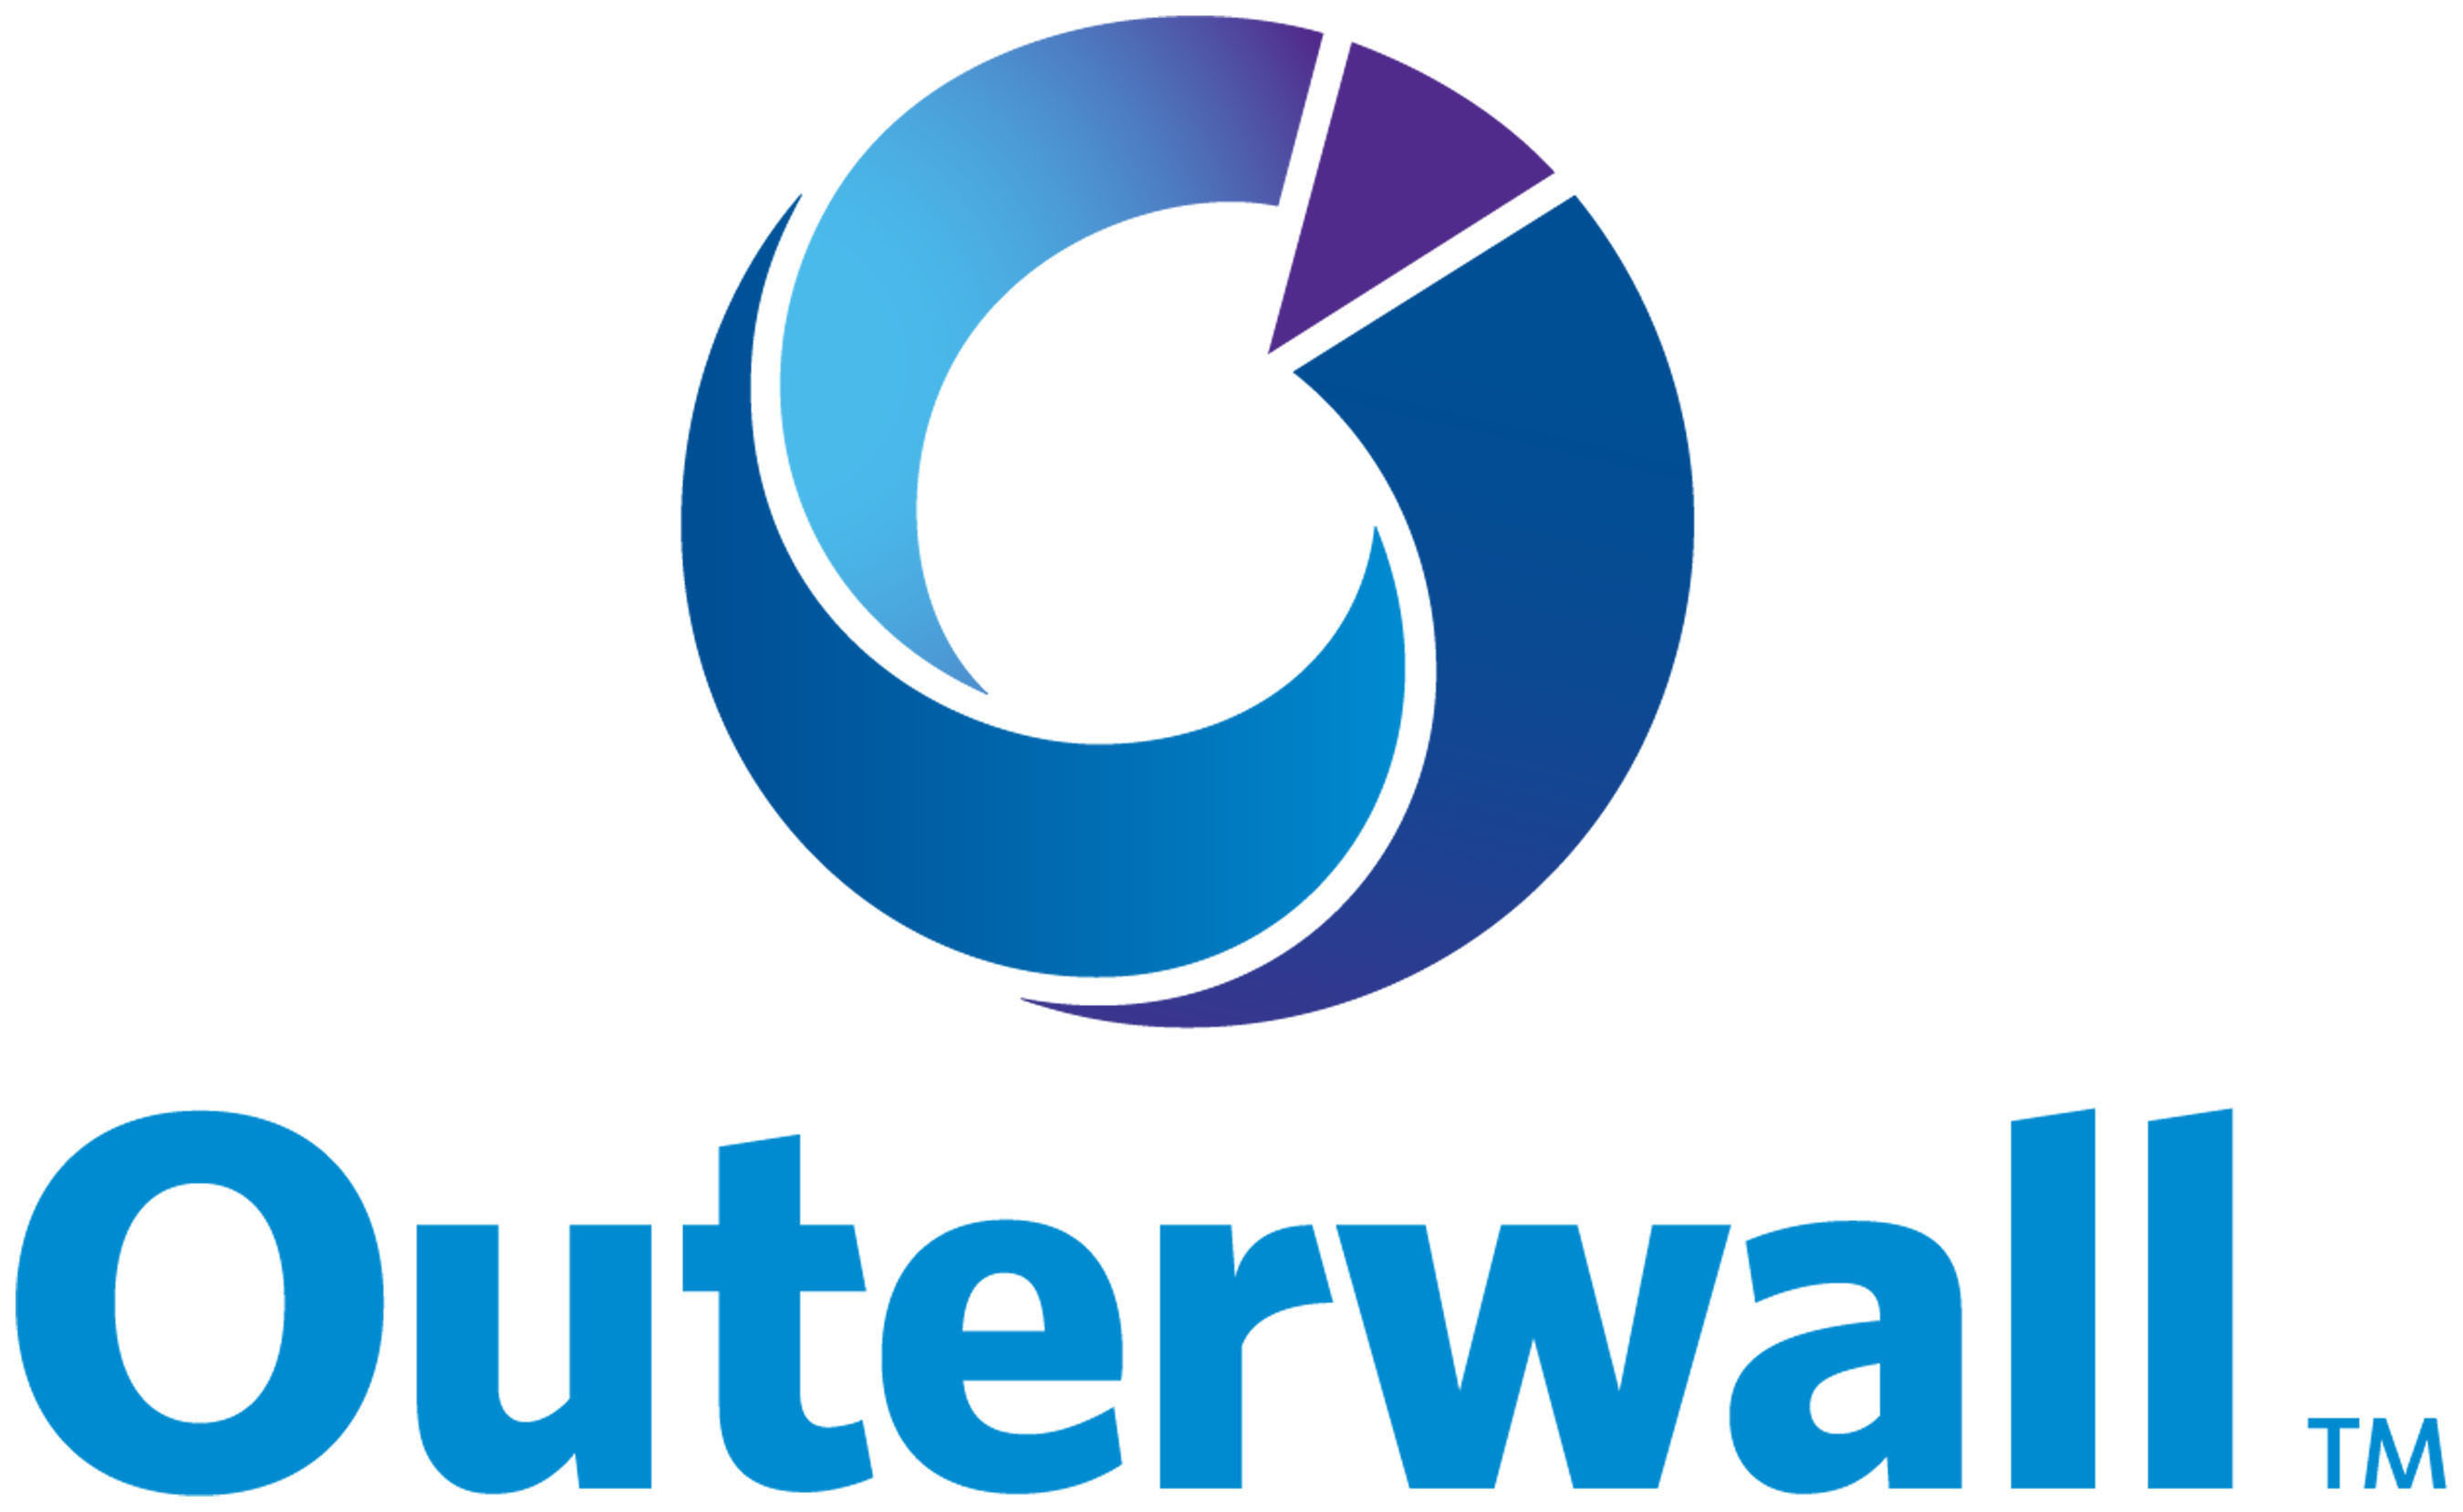 Outerwall Provides Updated Full Year 2015 Guidance